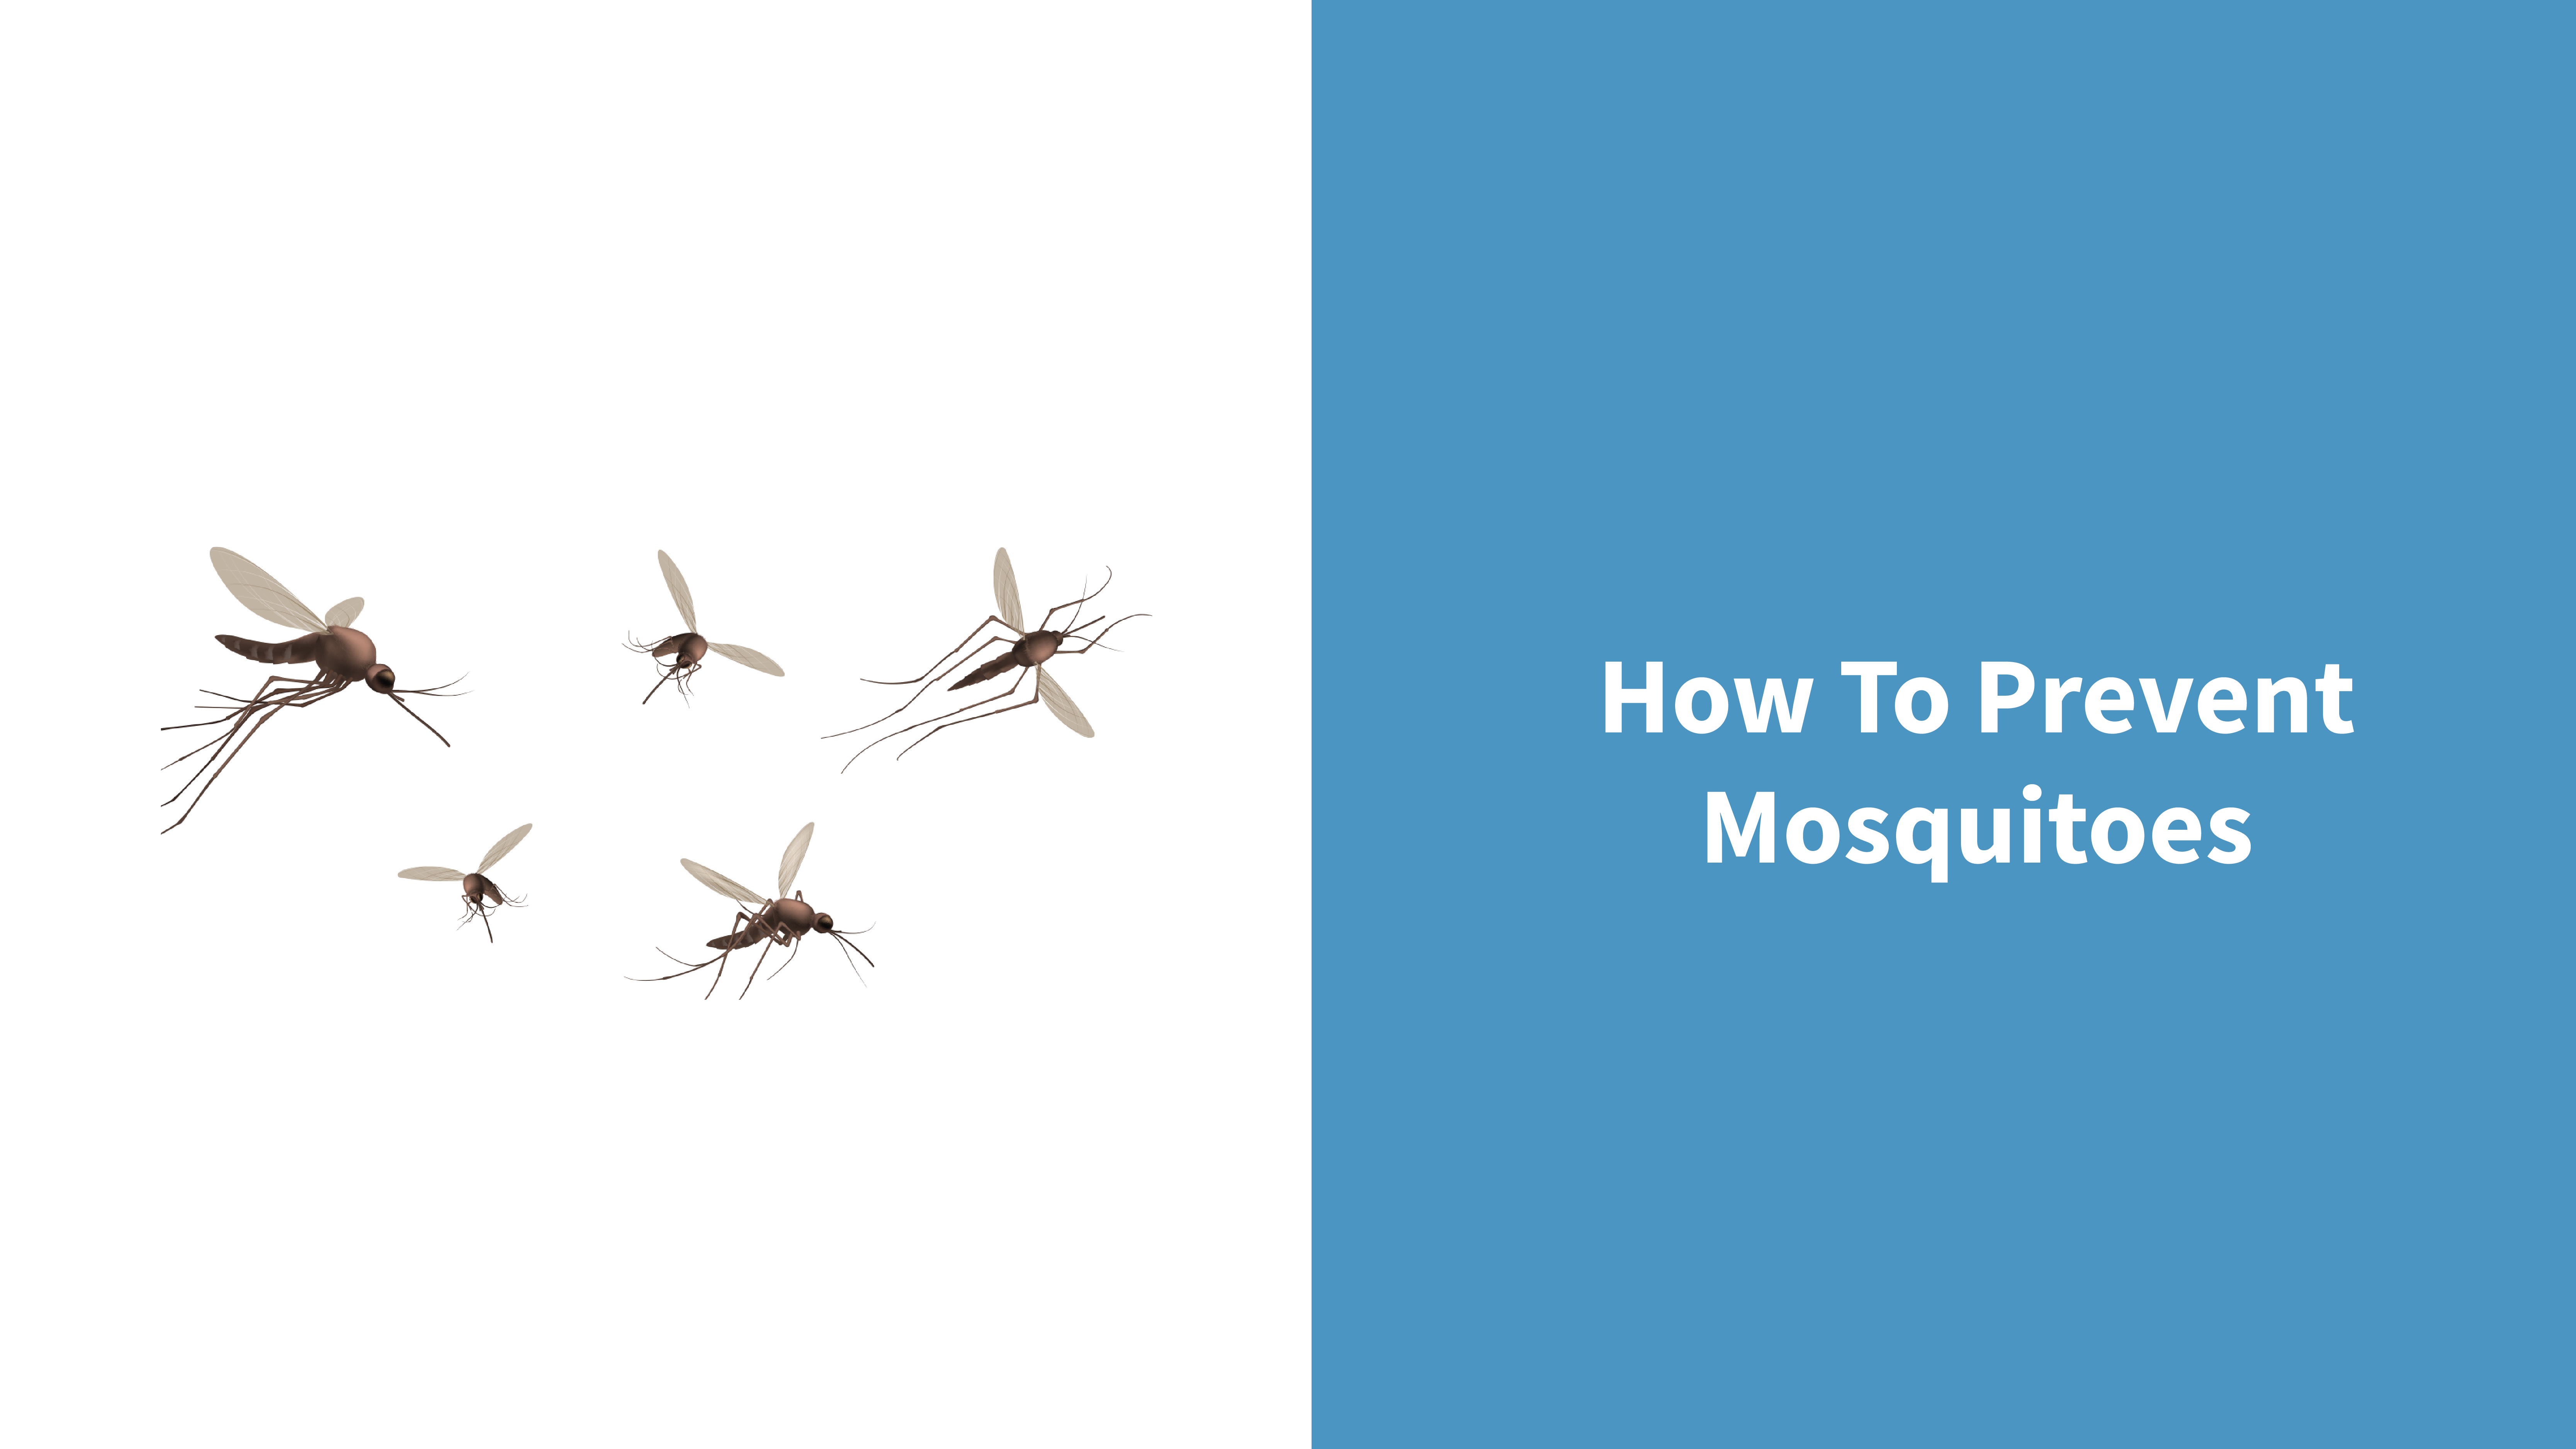 Mosquitoes elimination guide